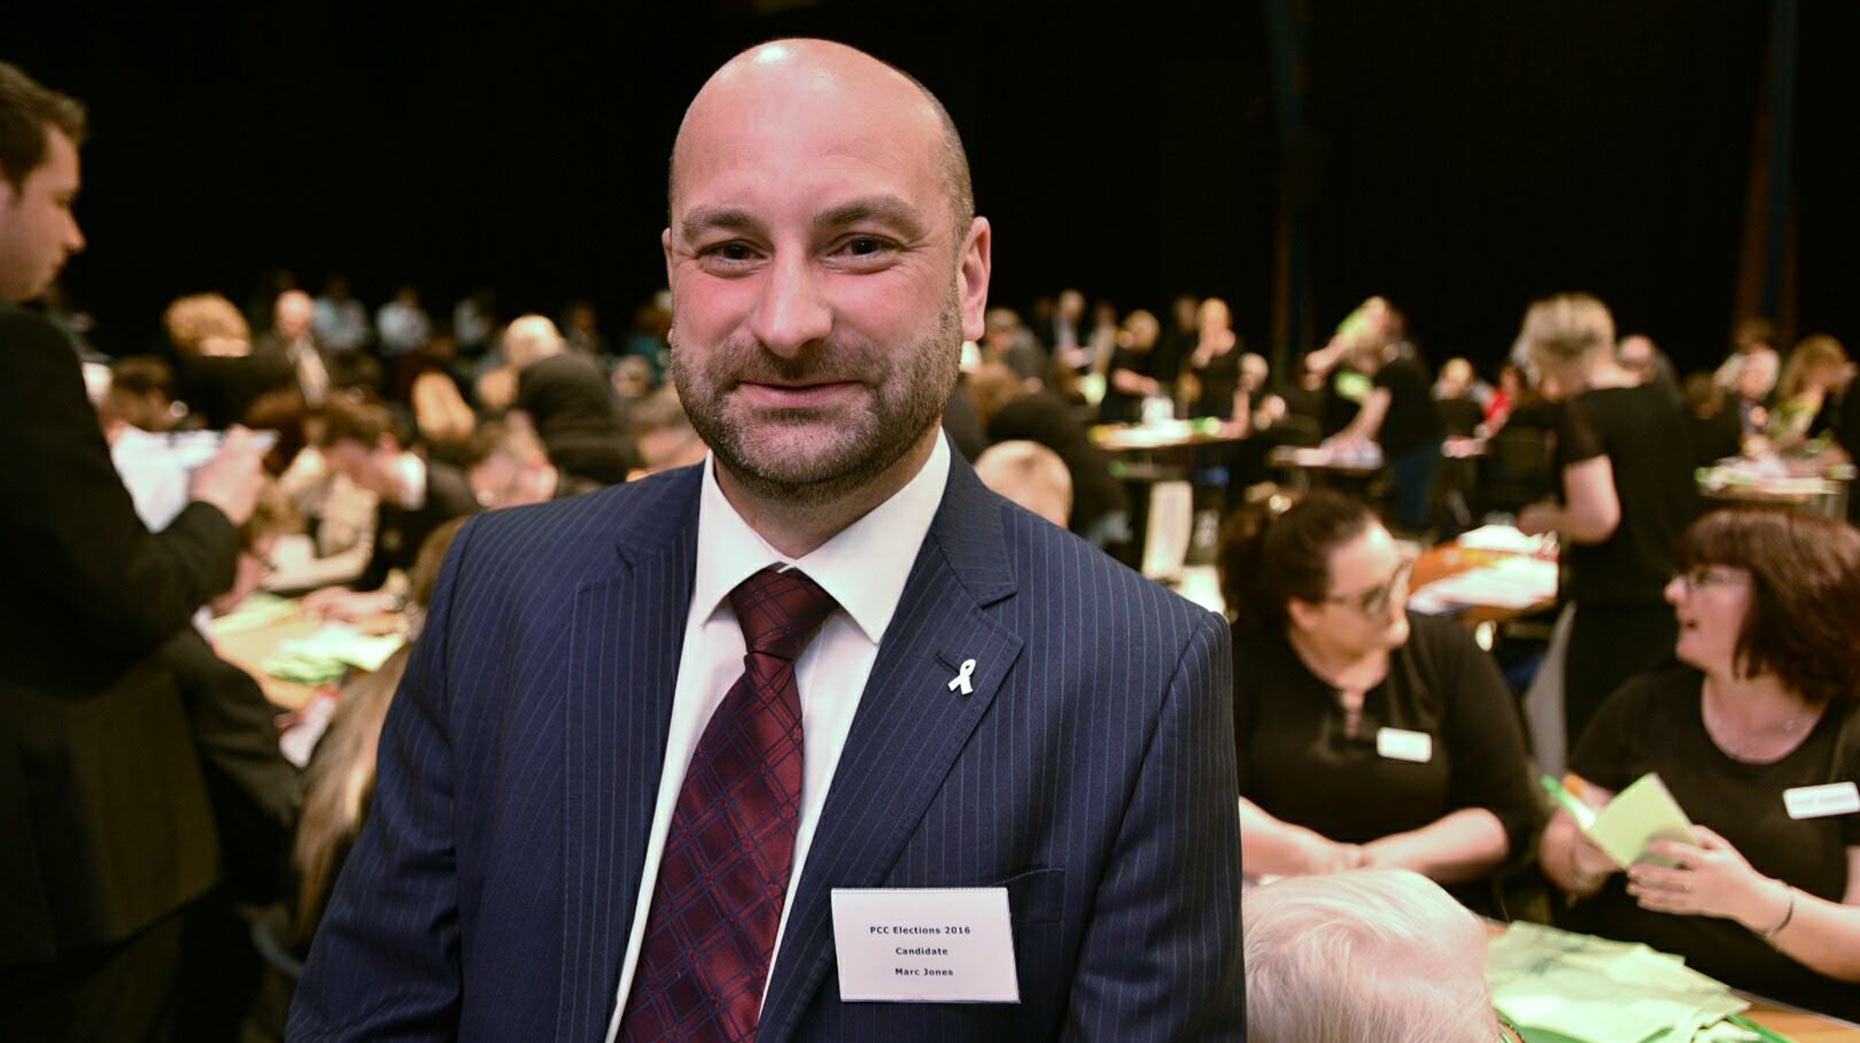 Lincolnshire's new Police and Crime Commissioner Marc Jones. Photo: Steve Smailes for The Lincolnite